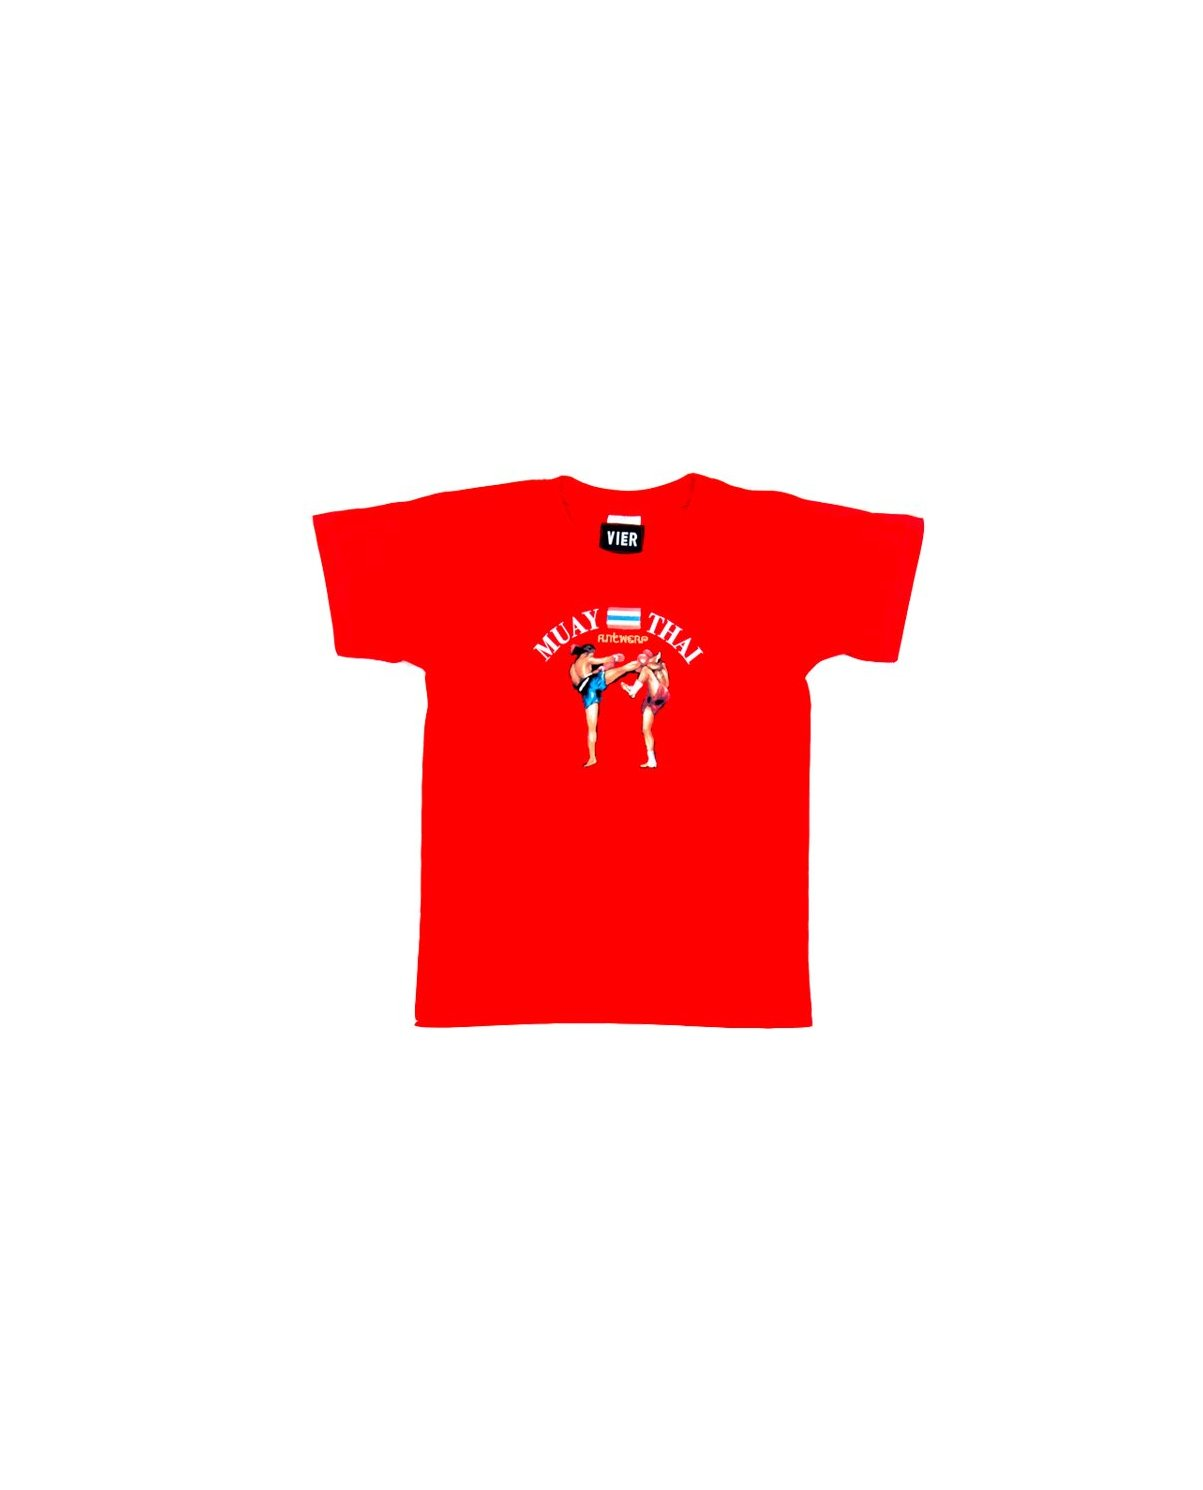 ANTWERP muay thai tee - red